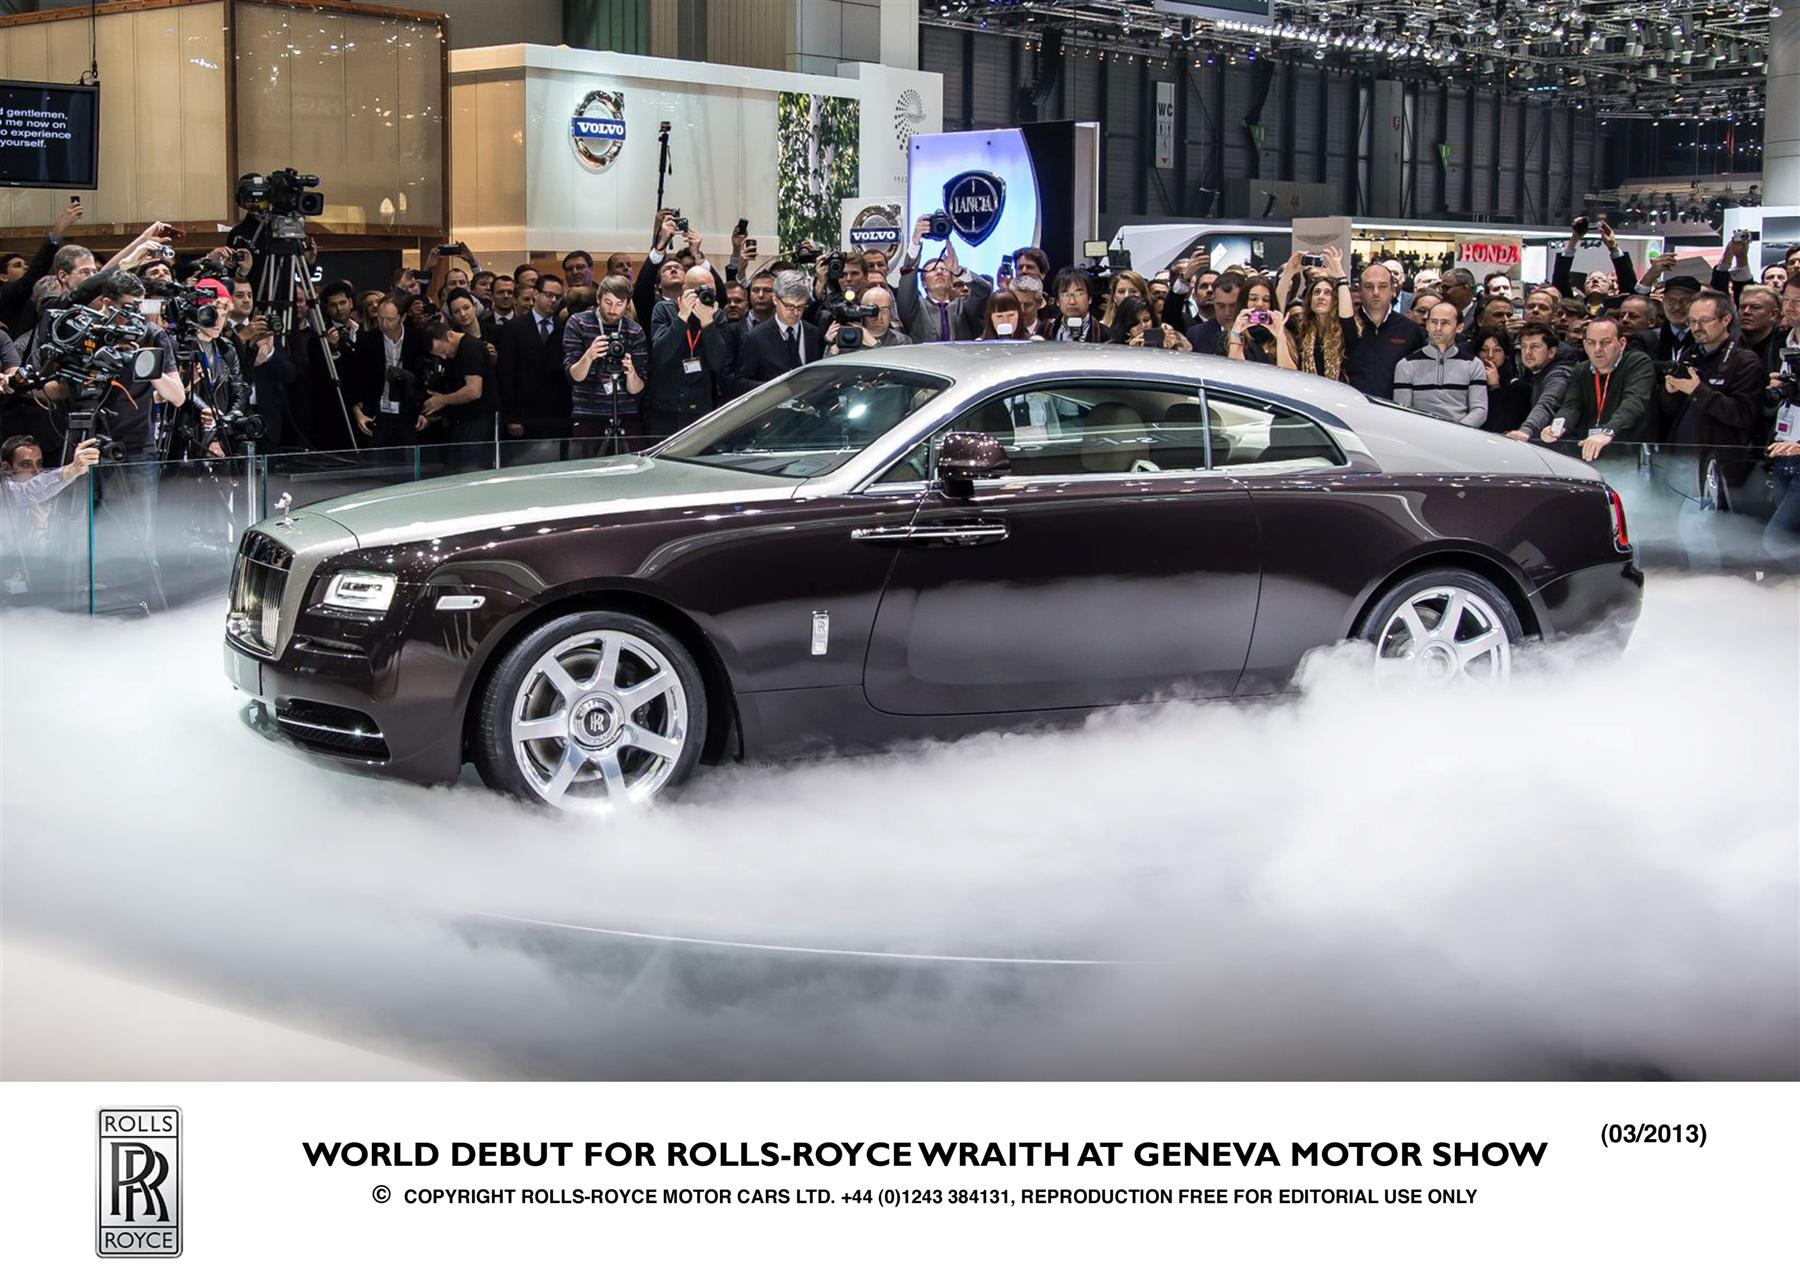 Manufacturer photo: The Rolls-Royce Wraith is the most powerful model in company history, with a 624-horsepower V-12 engine